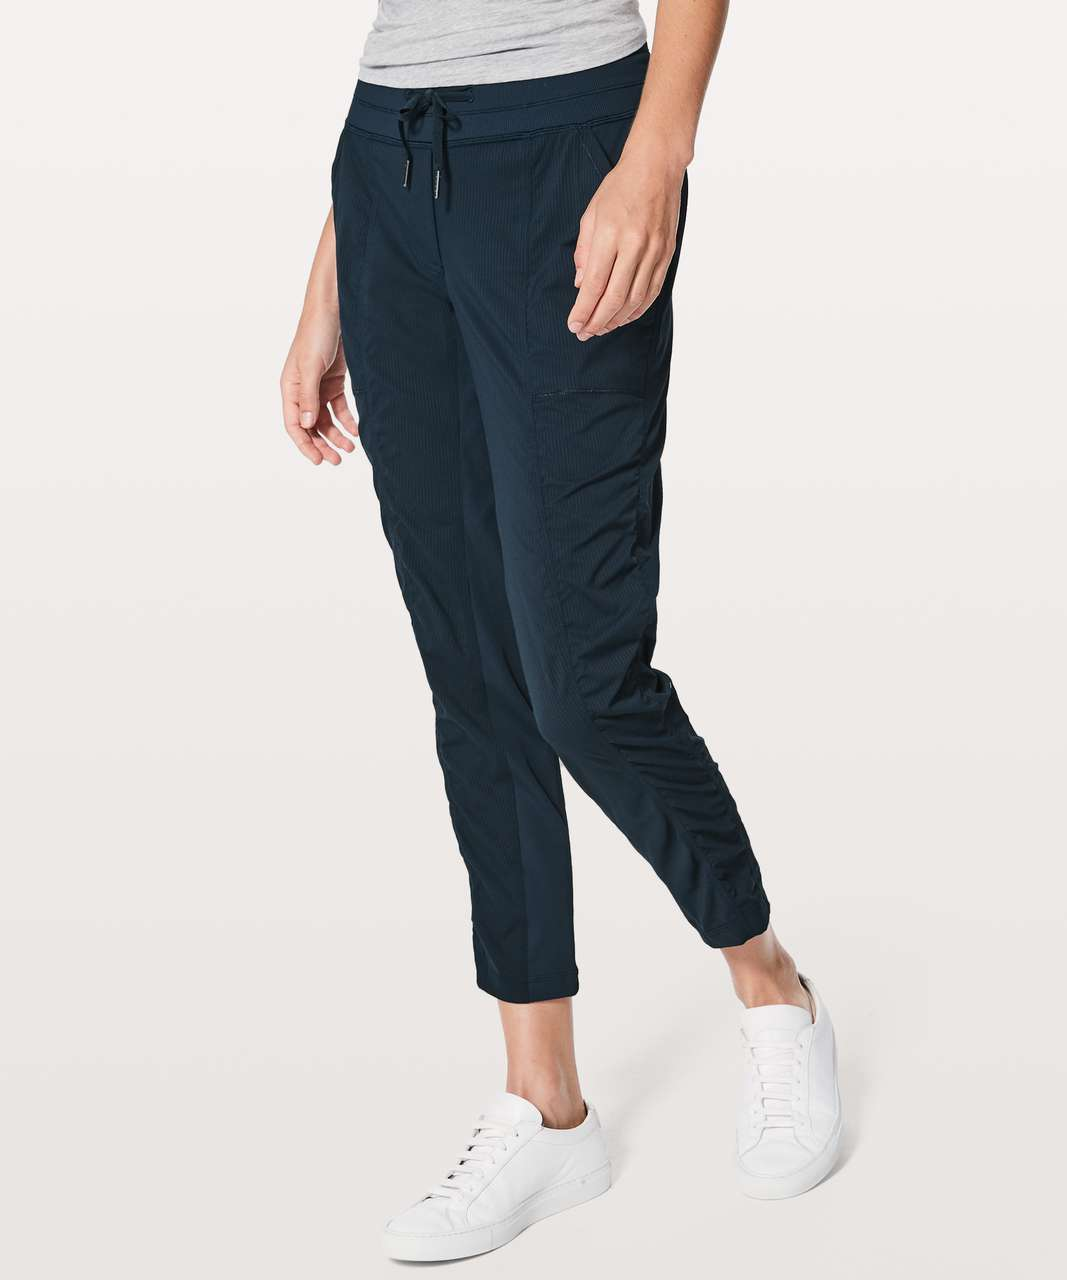 7cfa98543b7 Lululemon Street To Studio Pant II  Unlined 28